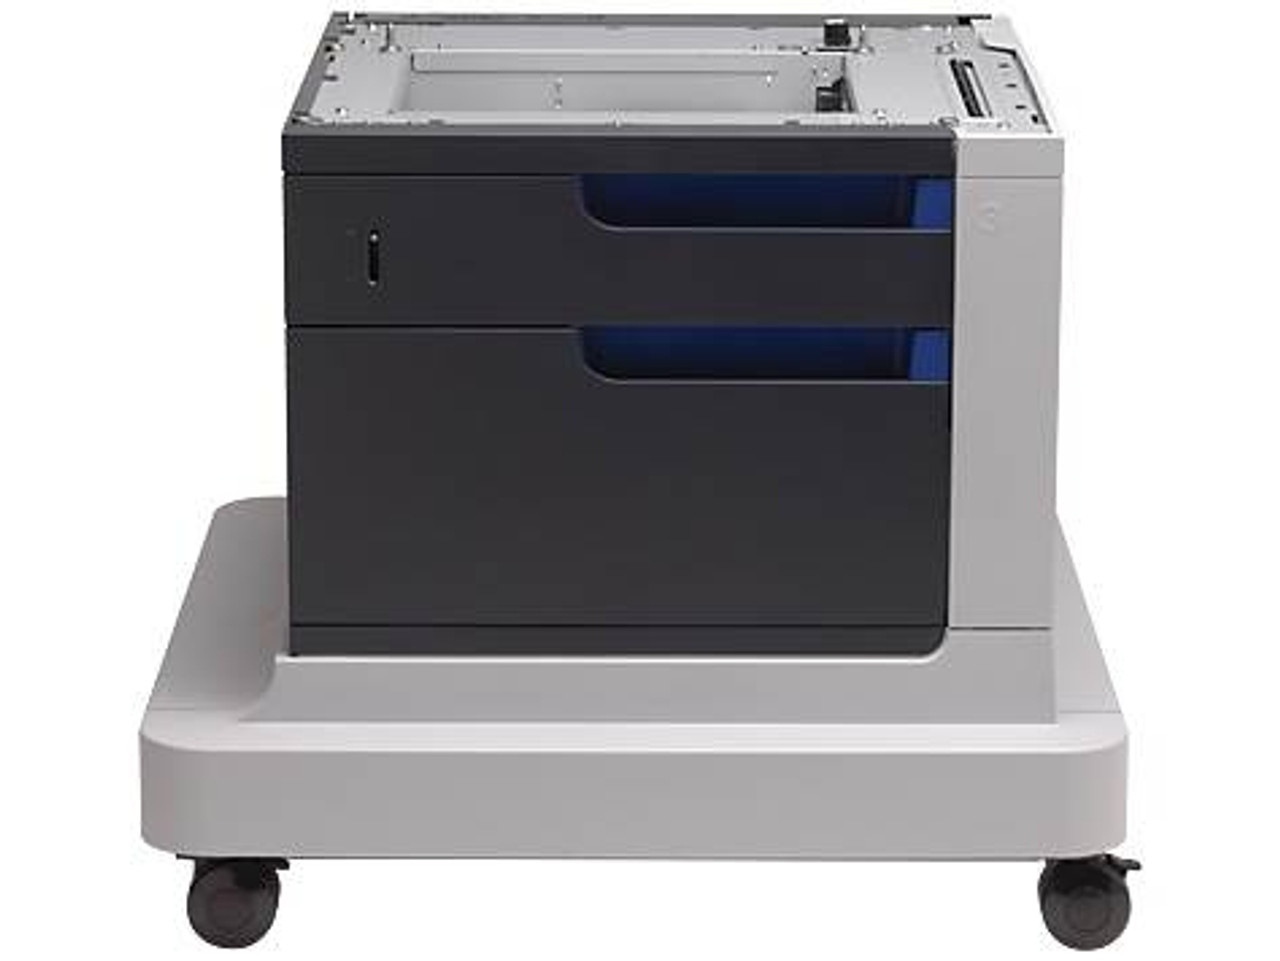 Image for HP CC422A Color LaserJet 500-sheet Paper Feeder and Cabinet CX Computer Superstore